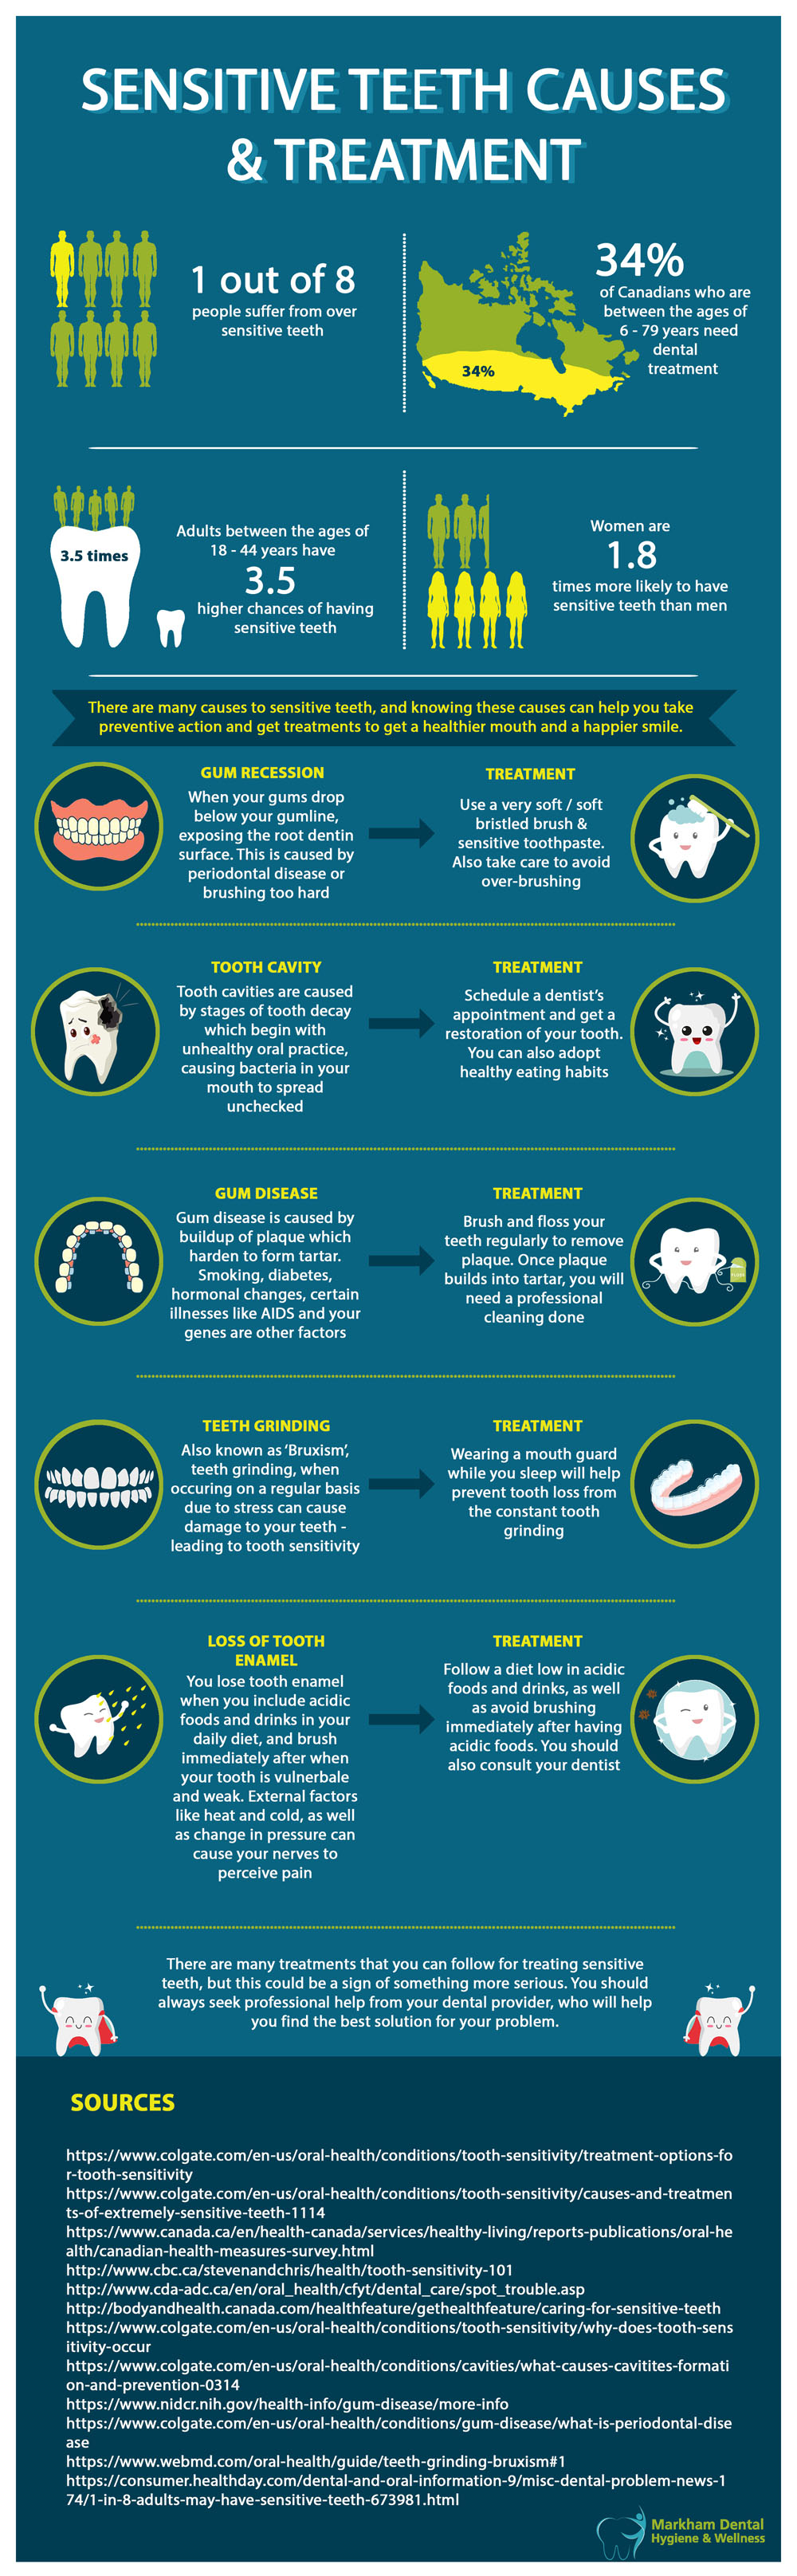 Sensitive Teeth Causes & Treatment